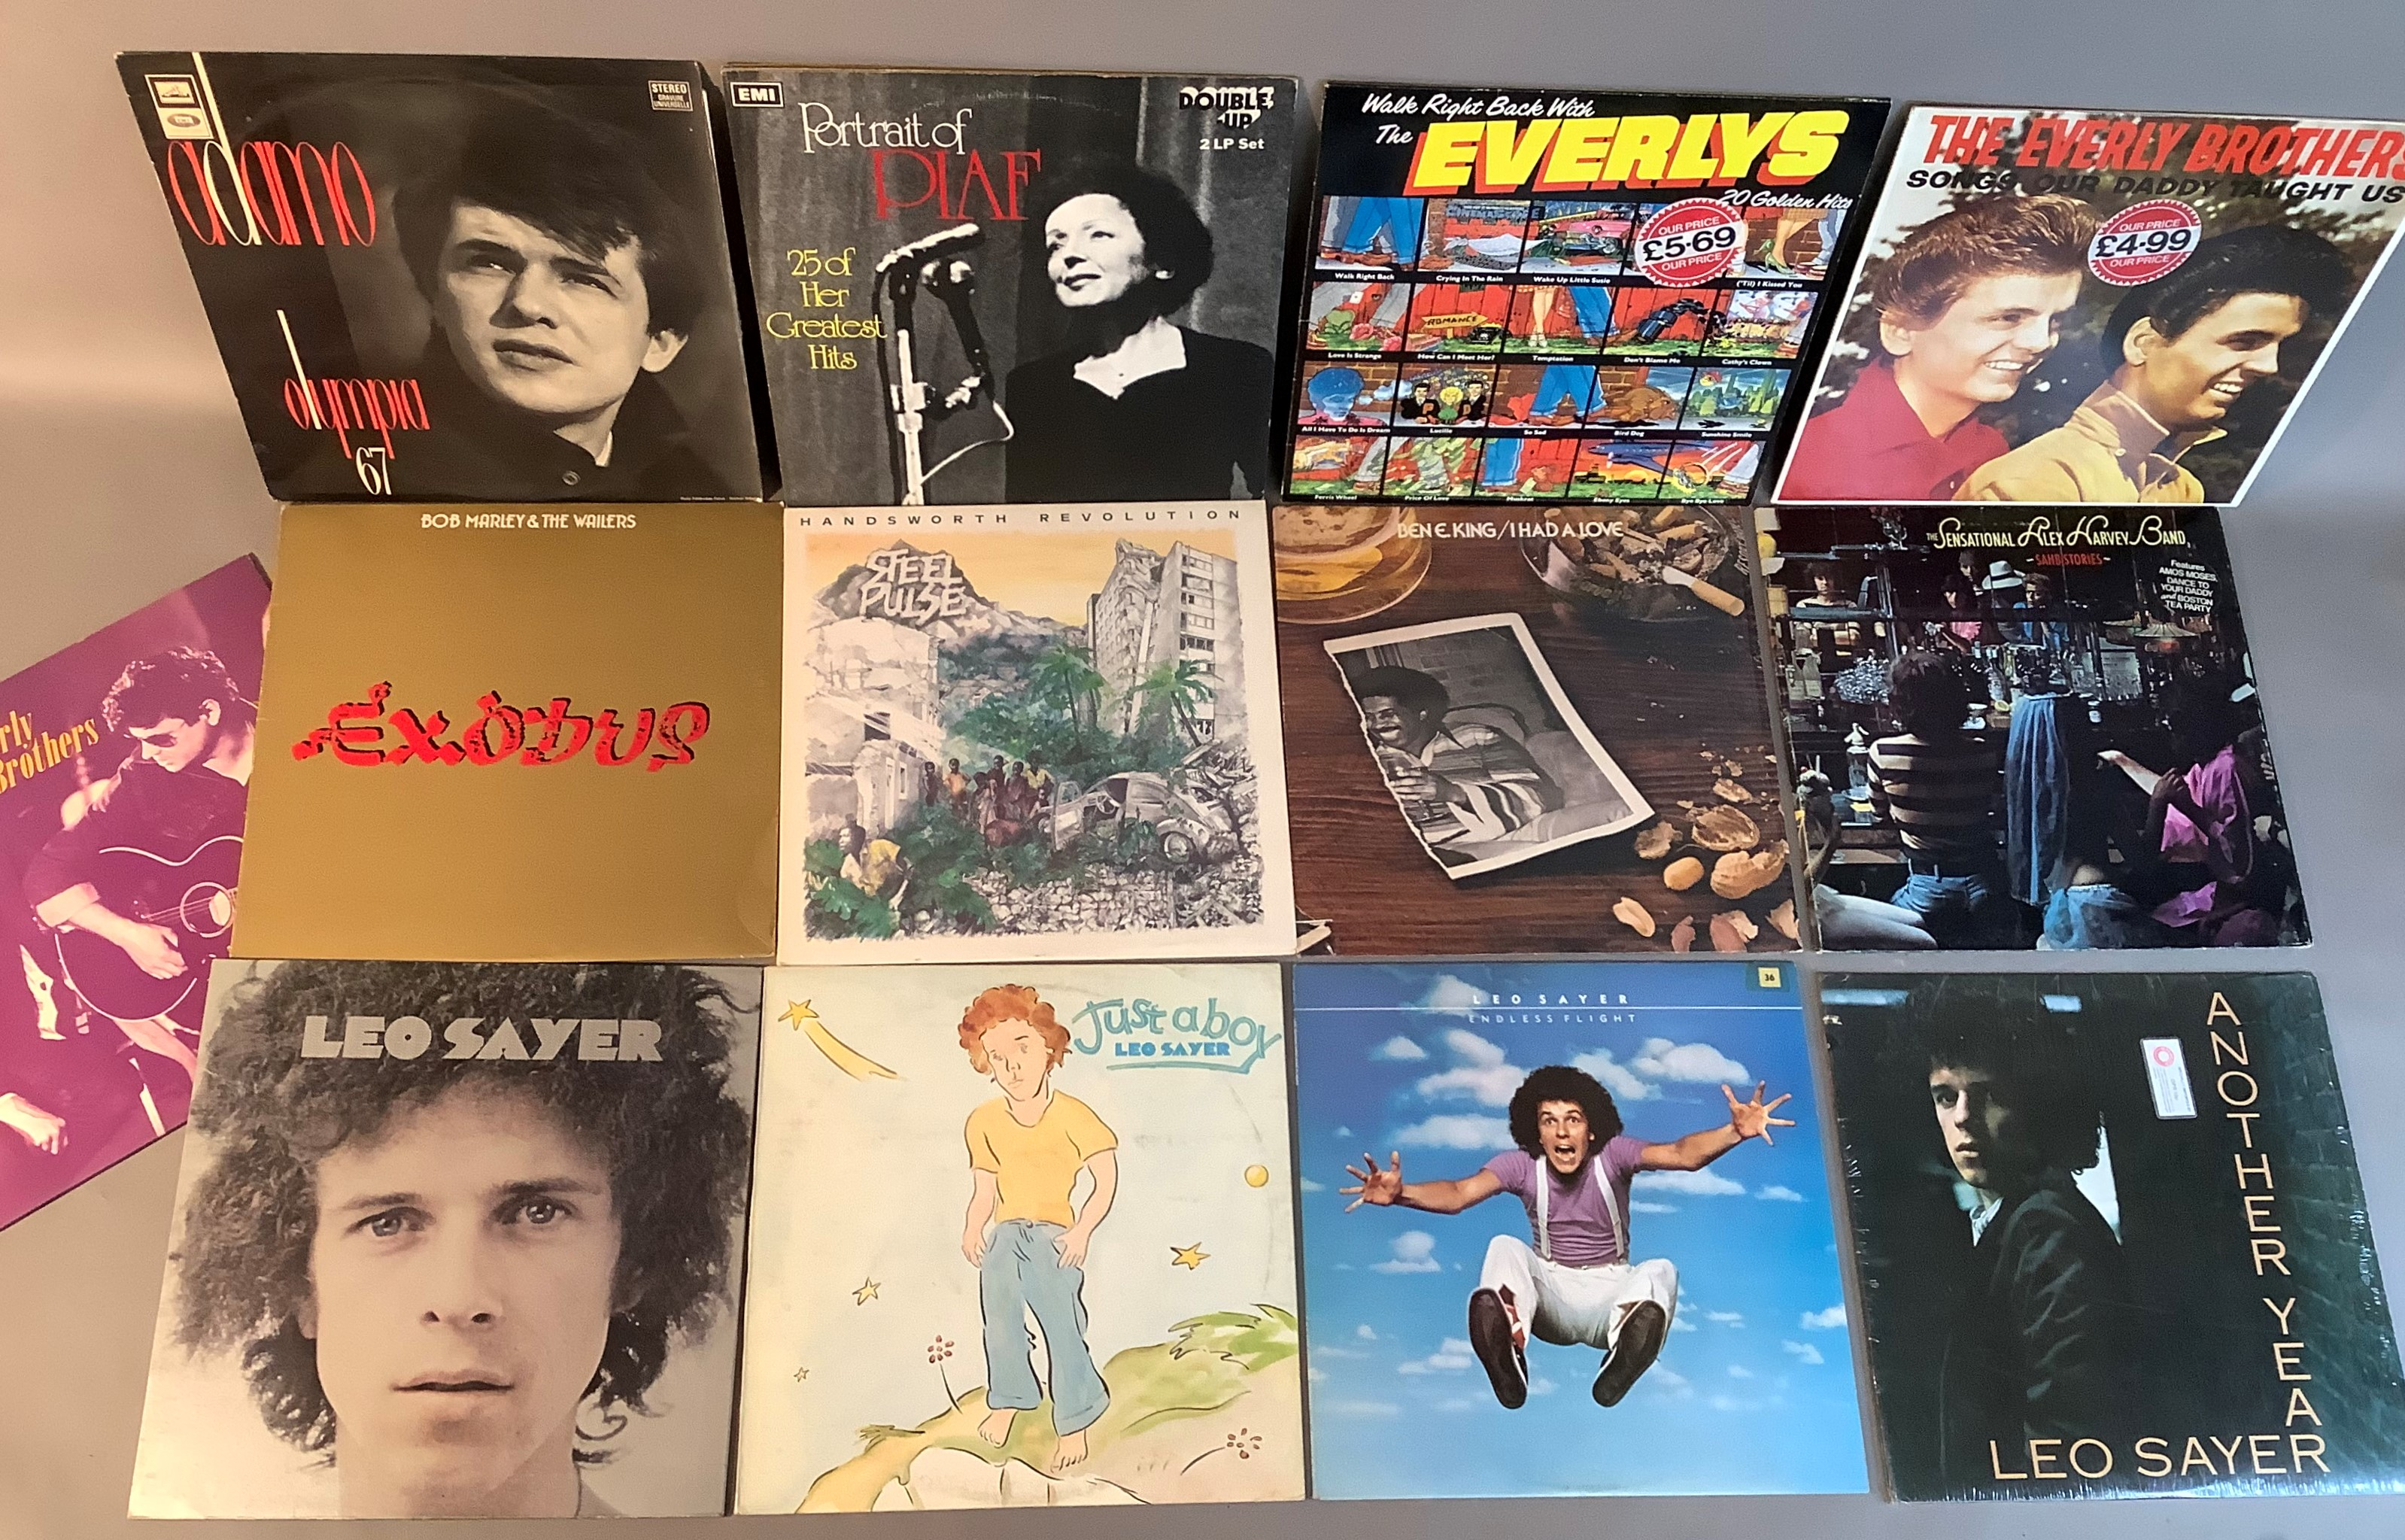 A quantity of LP's to include: Adamo - Olympia '67, Edith Piaf - Portrait of Piaf, Everly Brothers -